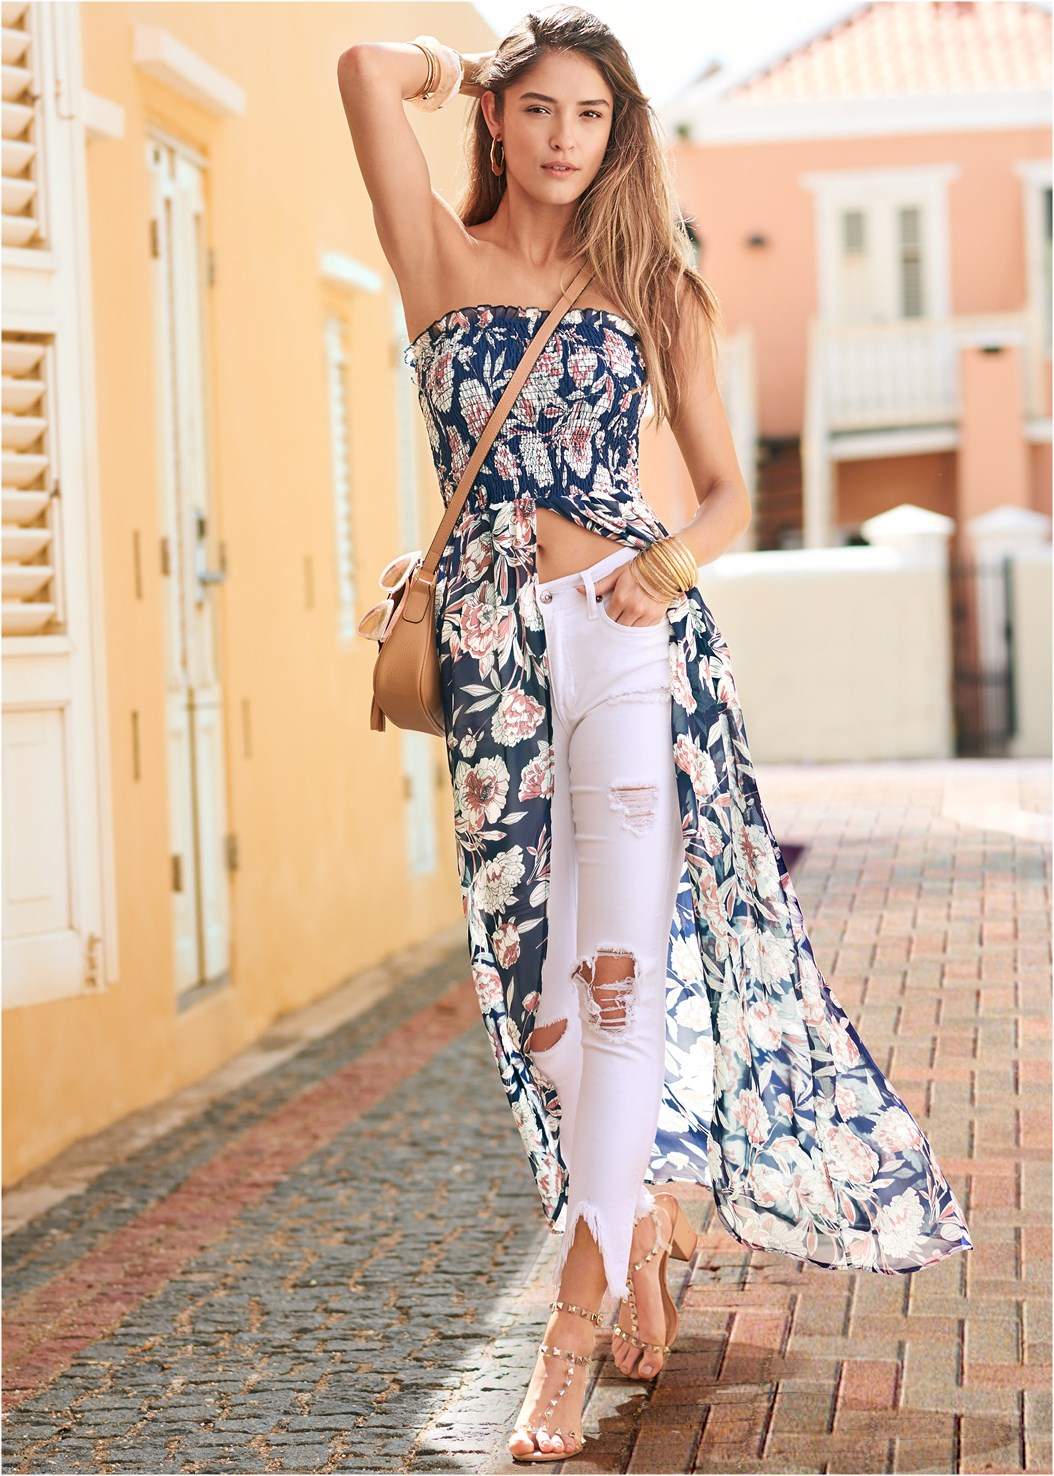 Smocked Floral High Low Top,Full Figure Strapless Bra,Transparent Studded Heels,Embellished Heels